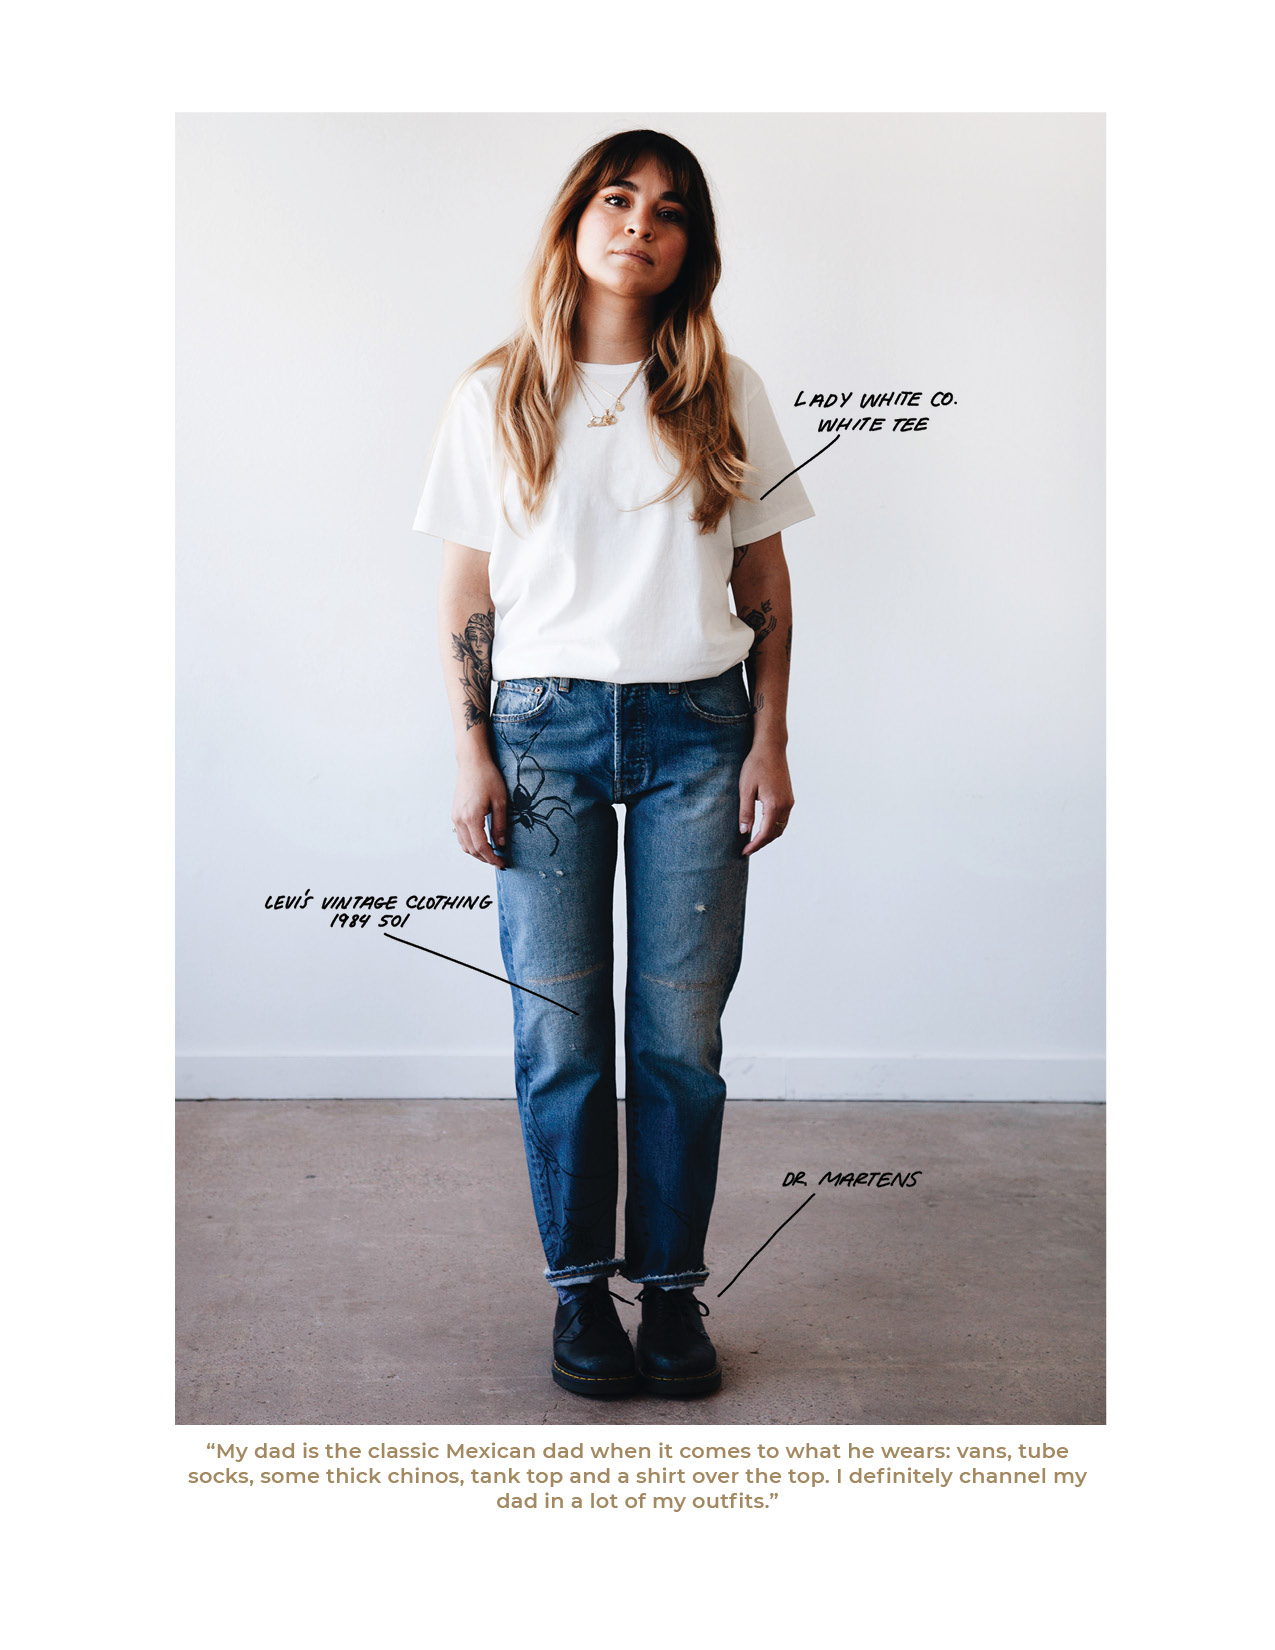 Lady white co. t-shirt, Levi's Vintage Clothing LVC 1982 501 jeans and doctor martens 1461 shoes on body